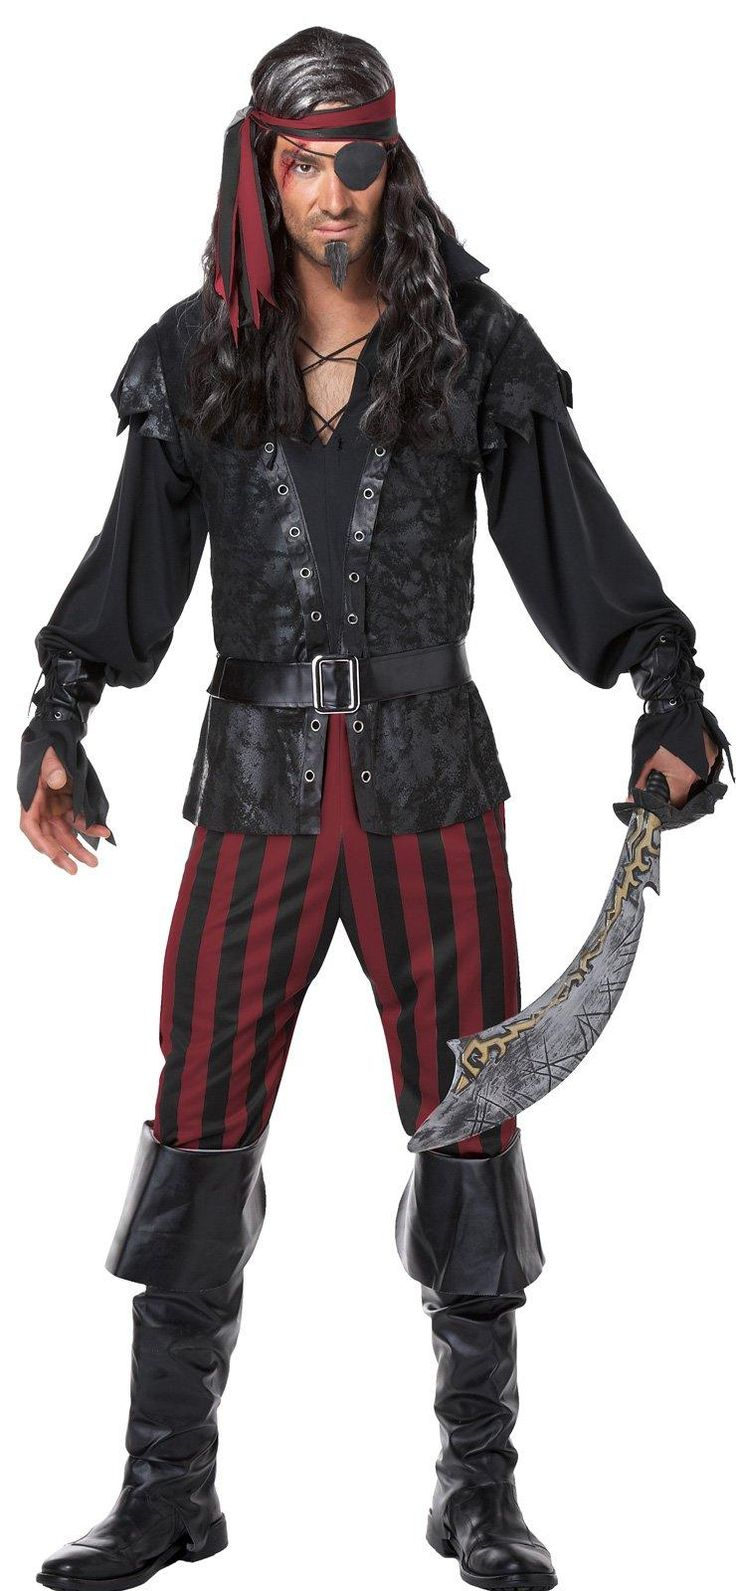 Best 25+ Men's pirate costume ideas on Pinterest | Pirate outfits ...